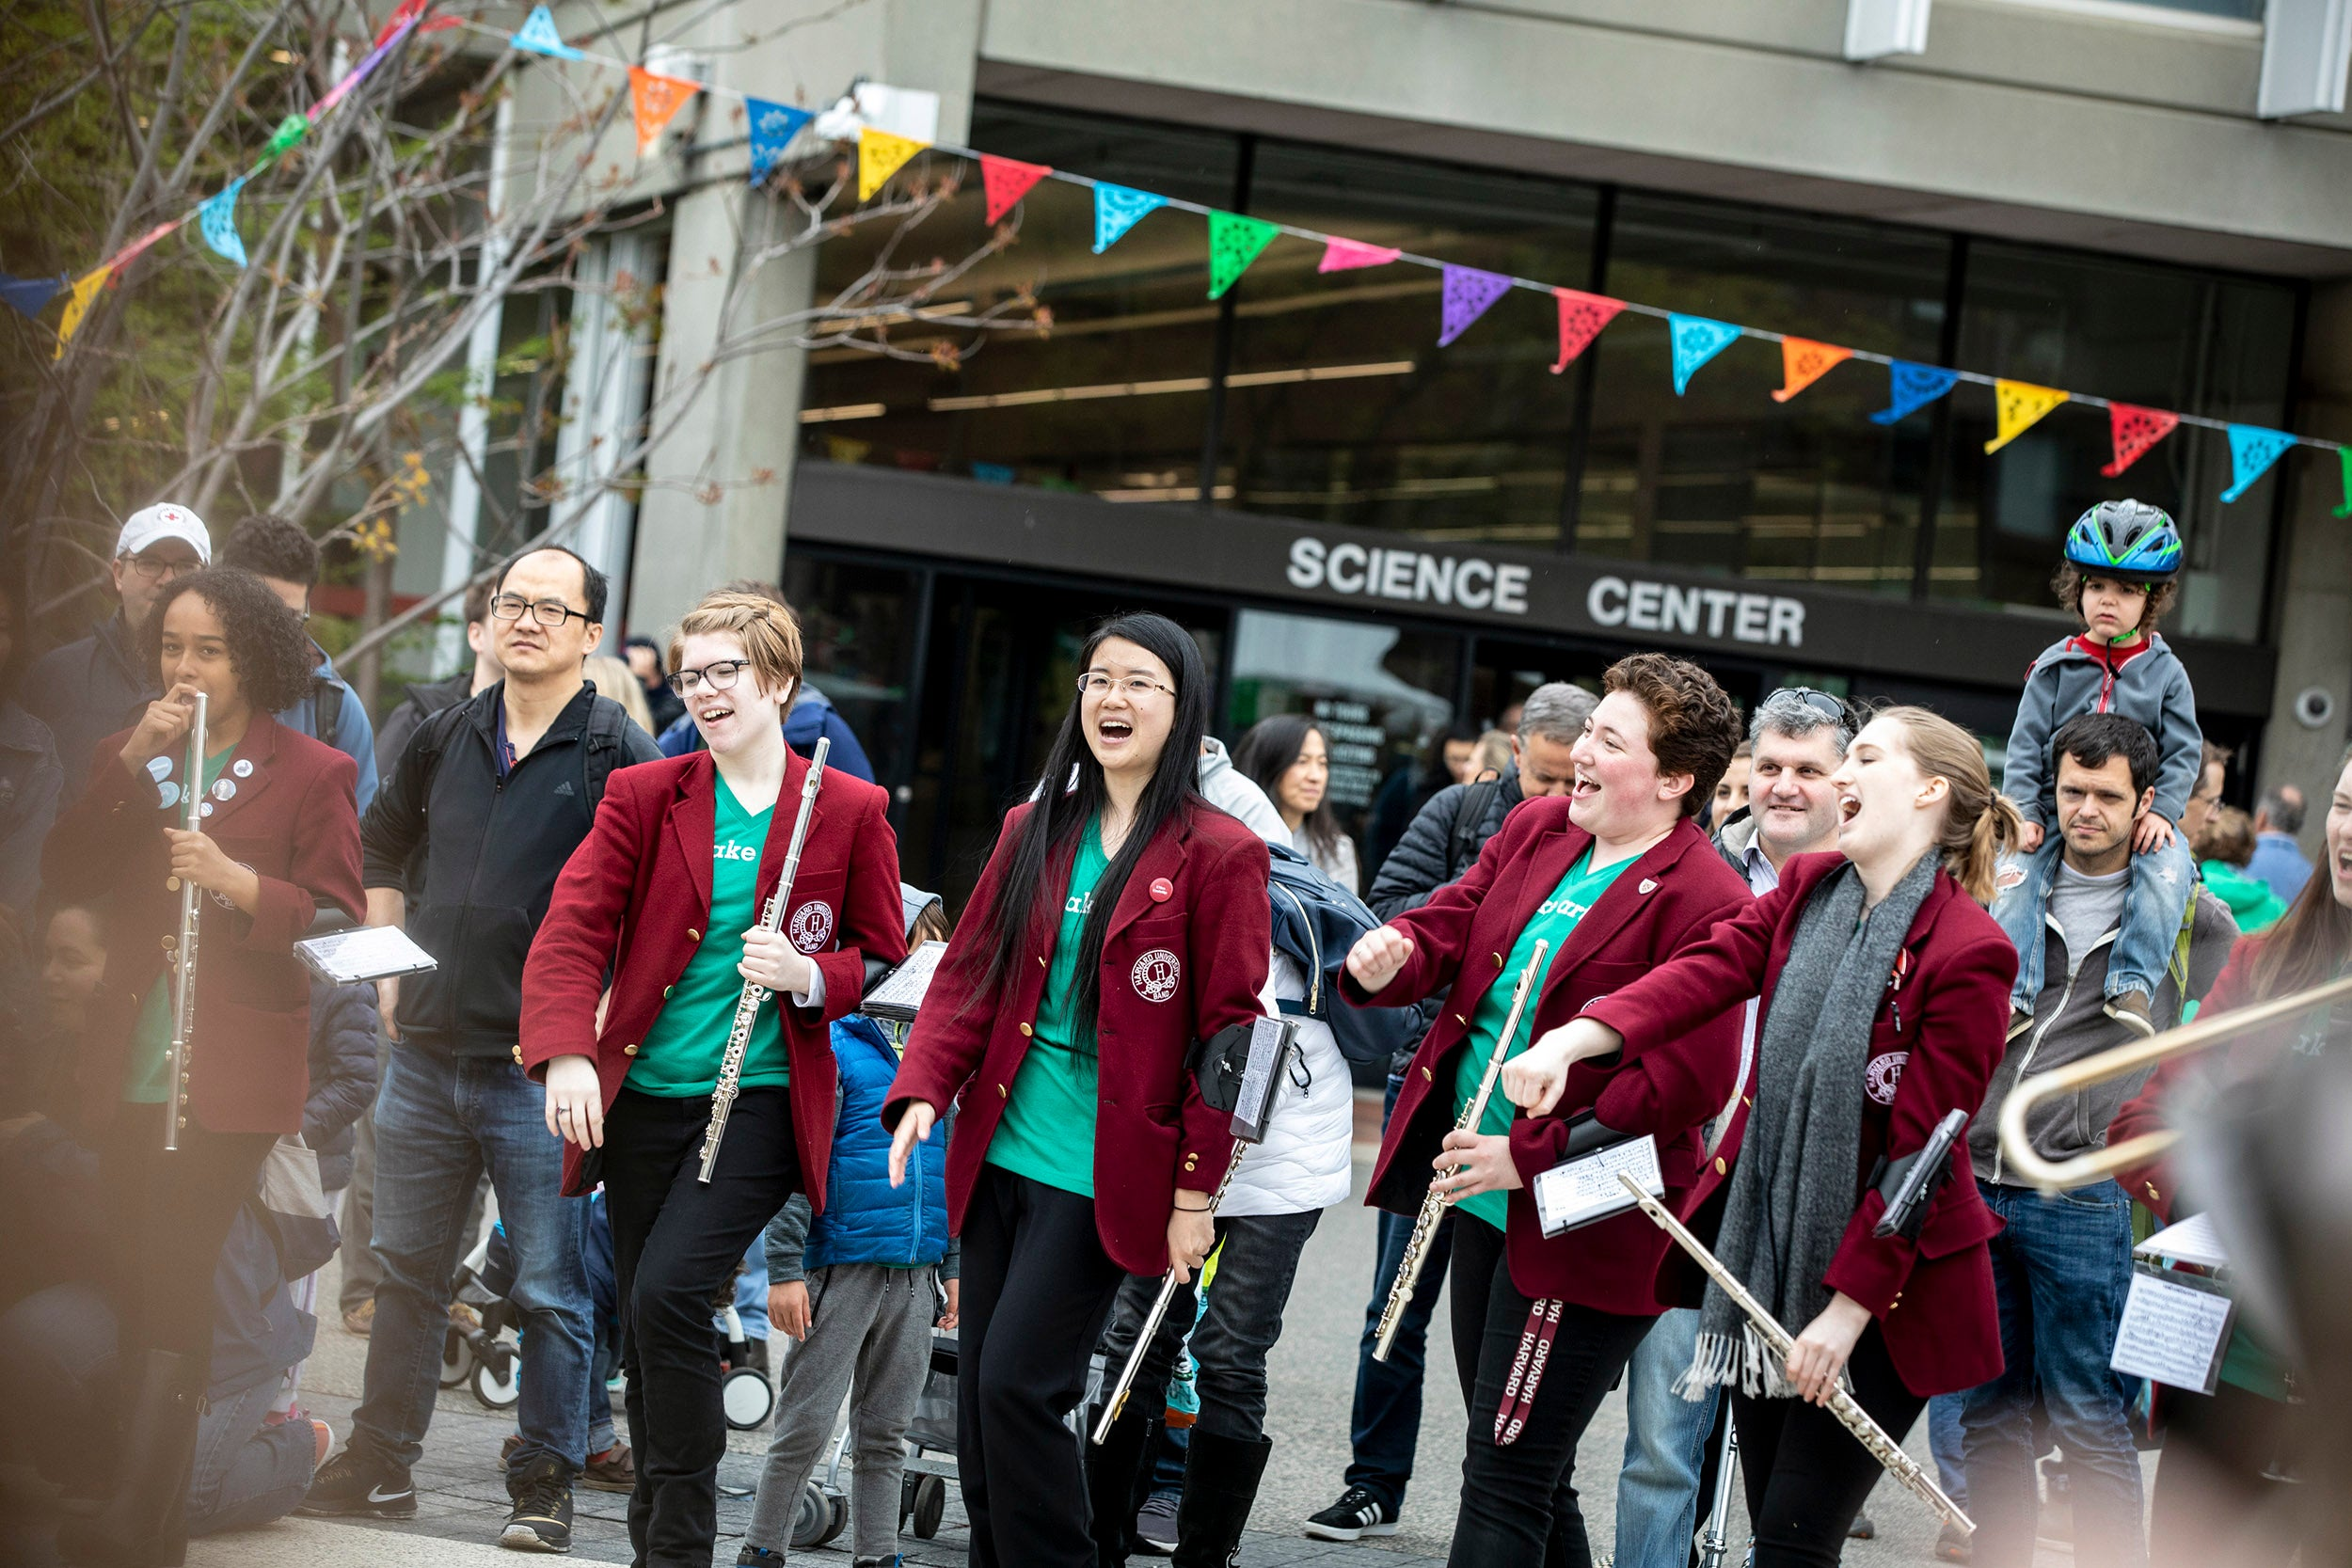 Harvard Marching Band performs on Science Center Plaza.